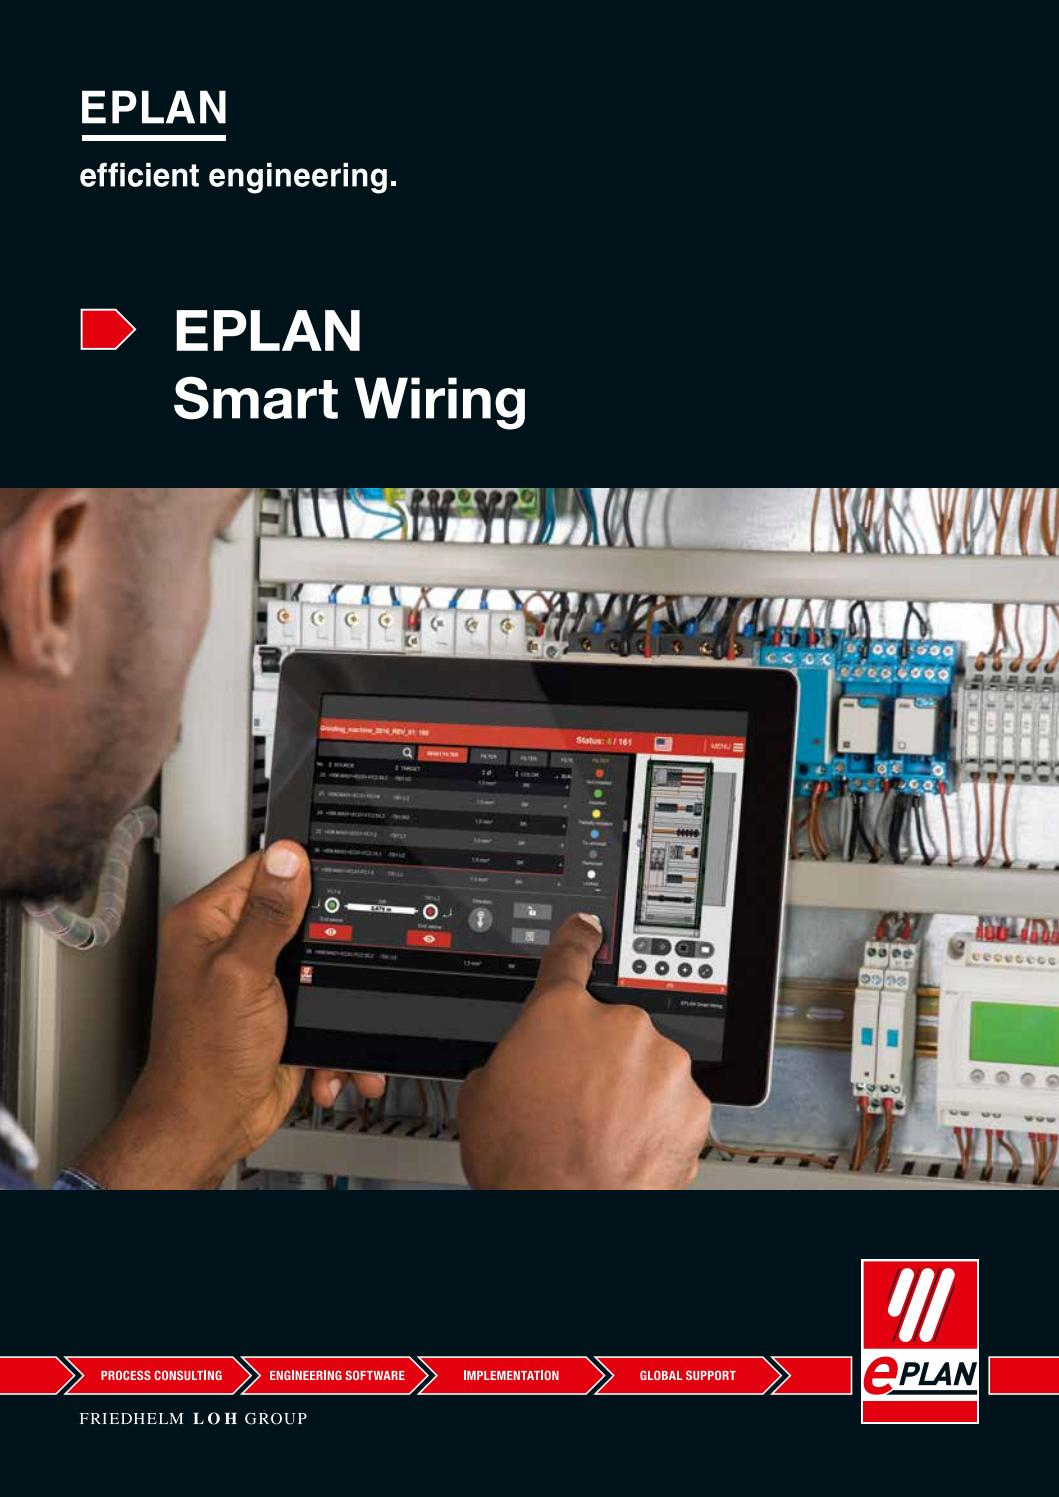 Eplan Smart Wiring By Eplan Software Amp Services S A Issuu